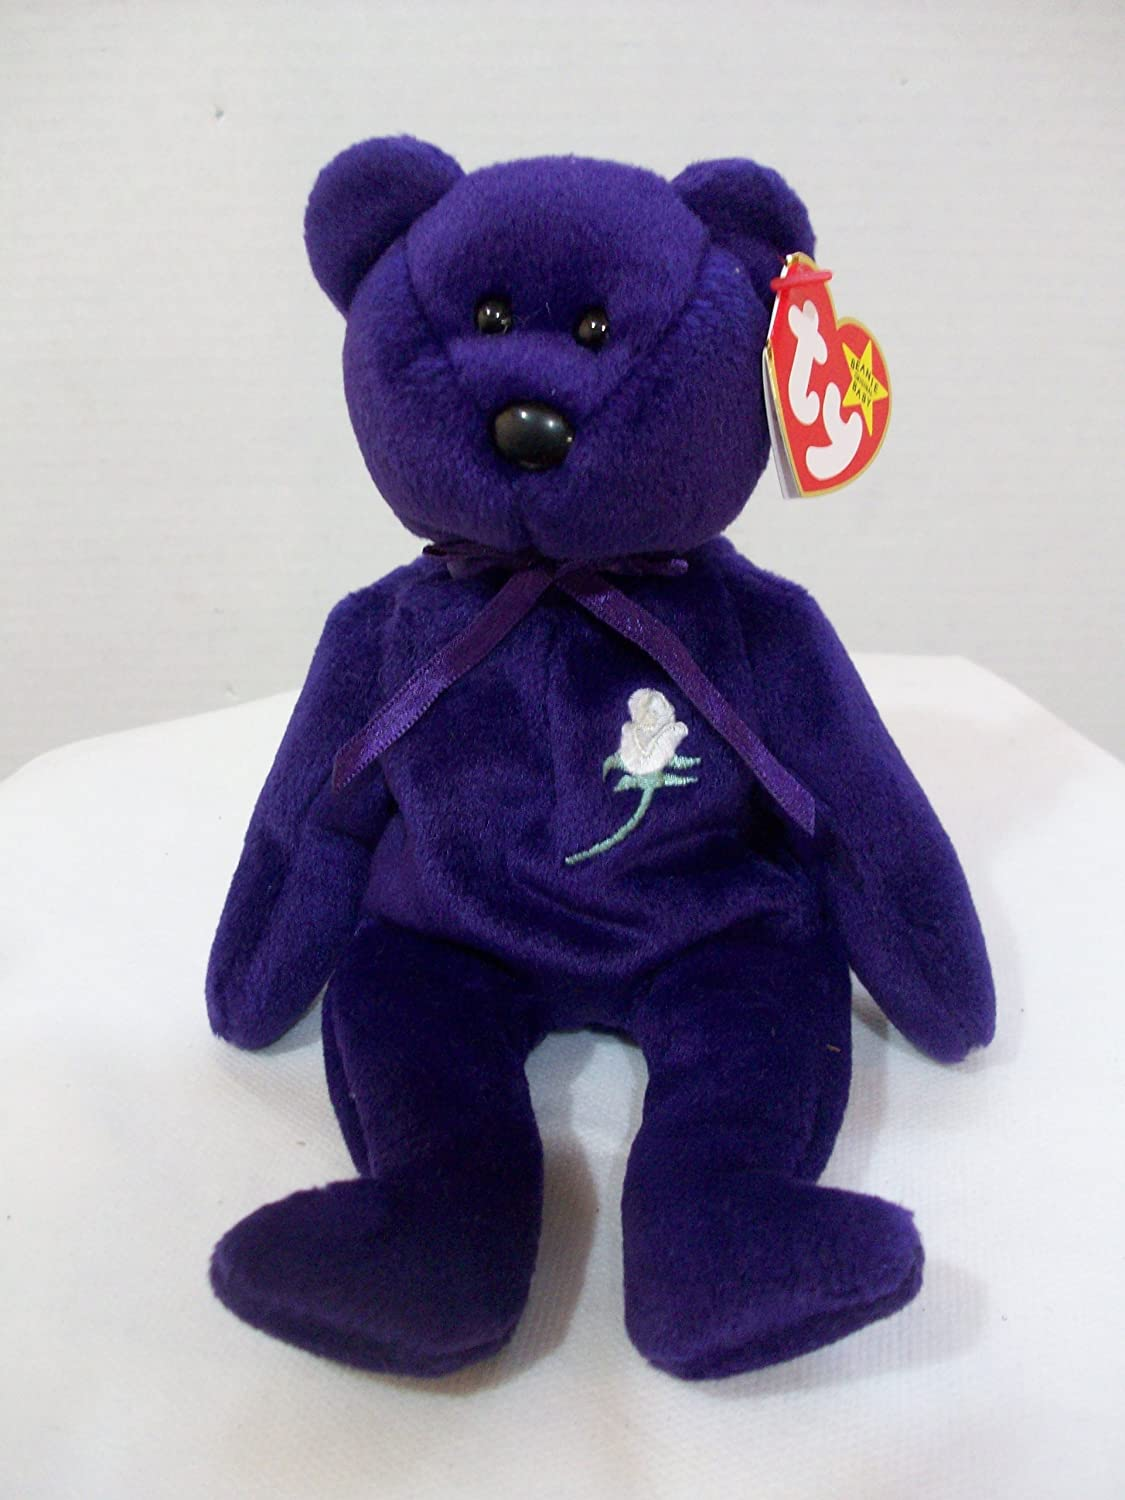 58b5830c8c2 Amazon.com  Ty Beanie Babies - Princess Bear  Toys   Games  Holiday Gifts   Toys   Games